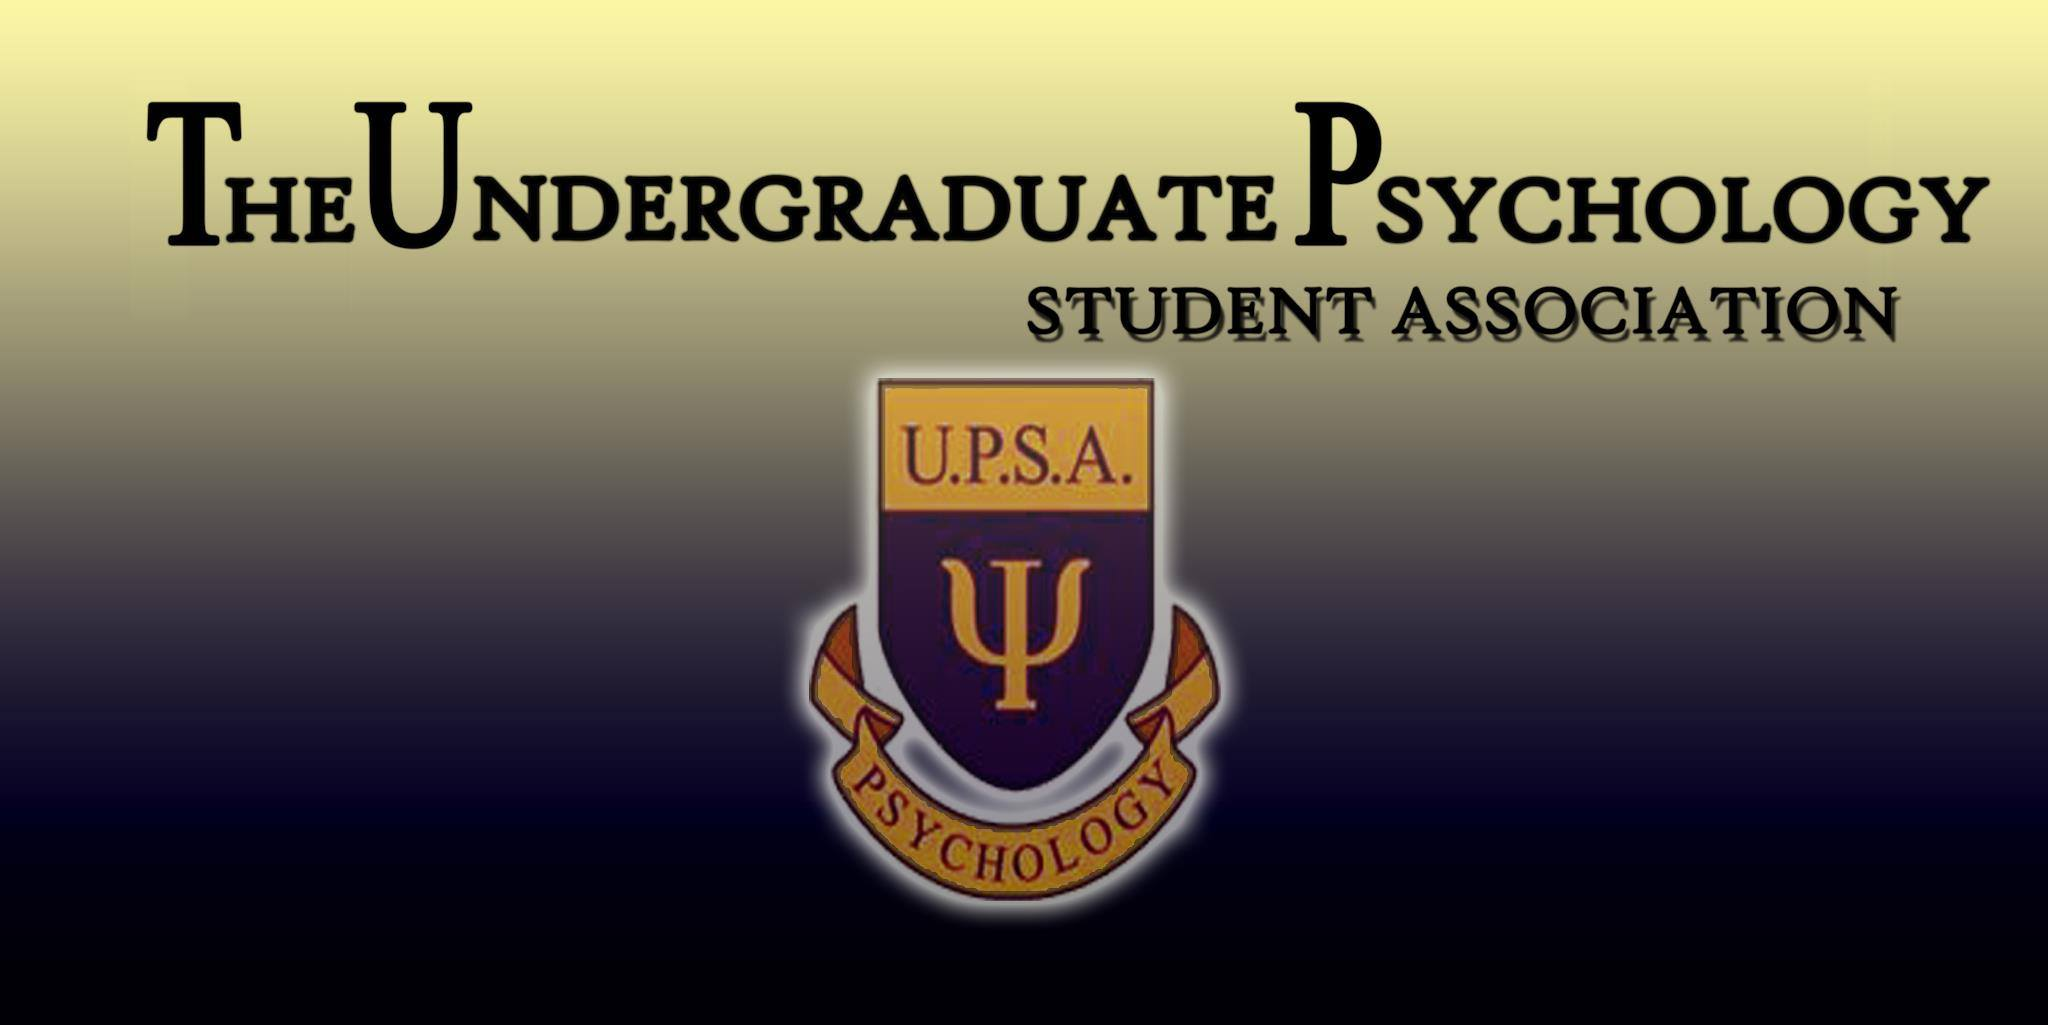 Welcome to UPSA